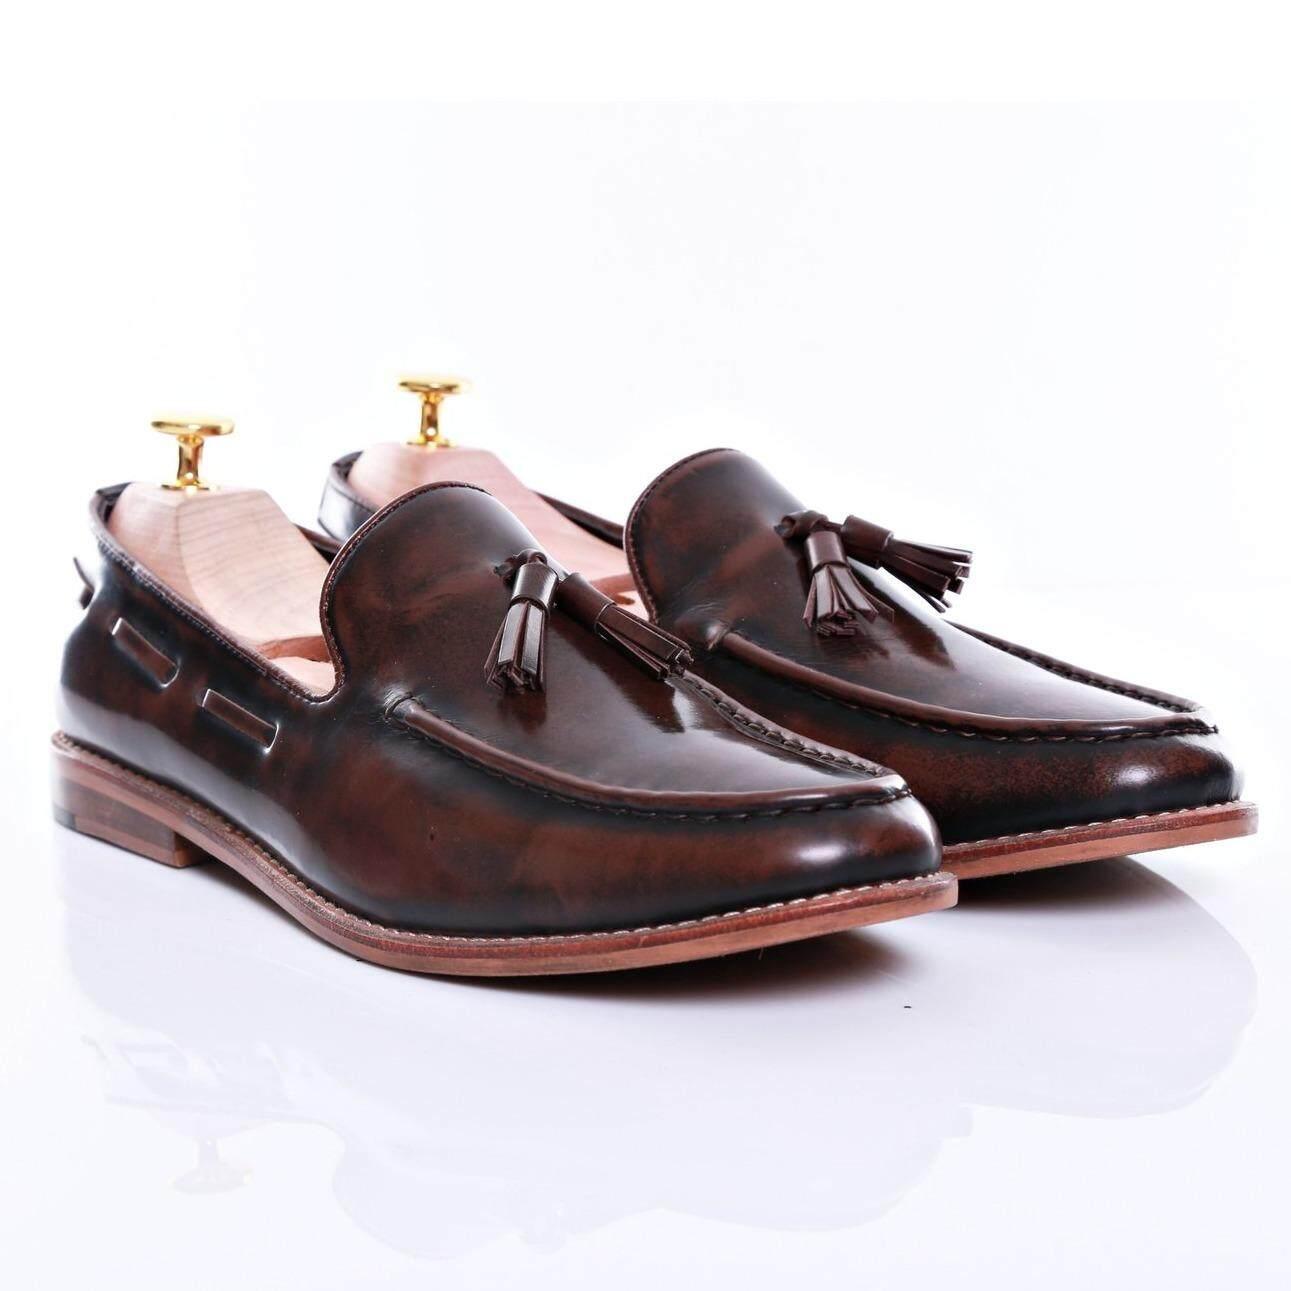 Zeve Shoes Tassel Loafer - Dark Brown Polished Leather (Normal Last)